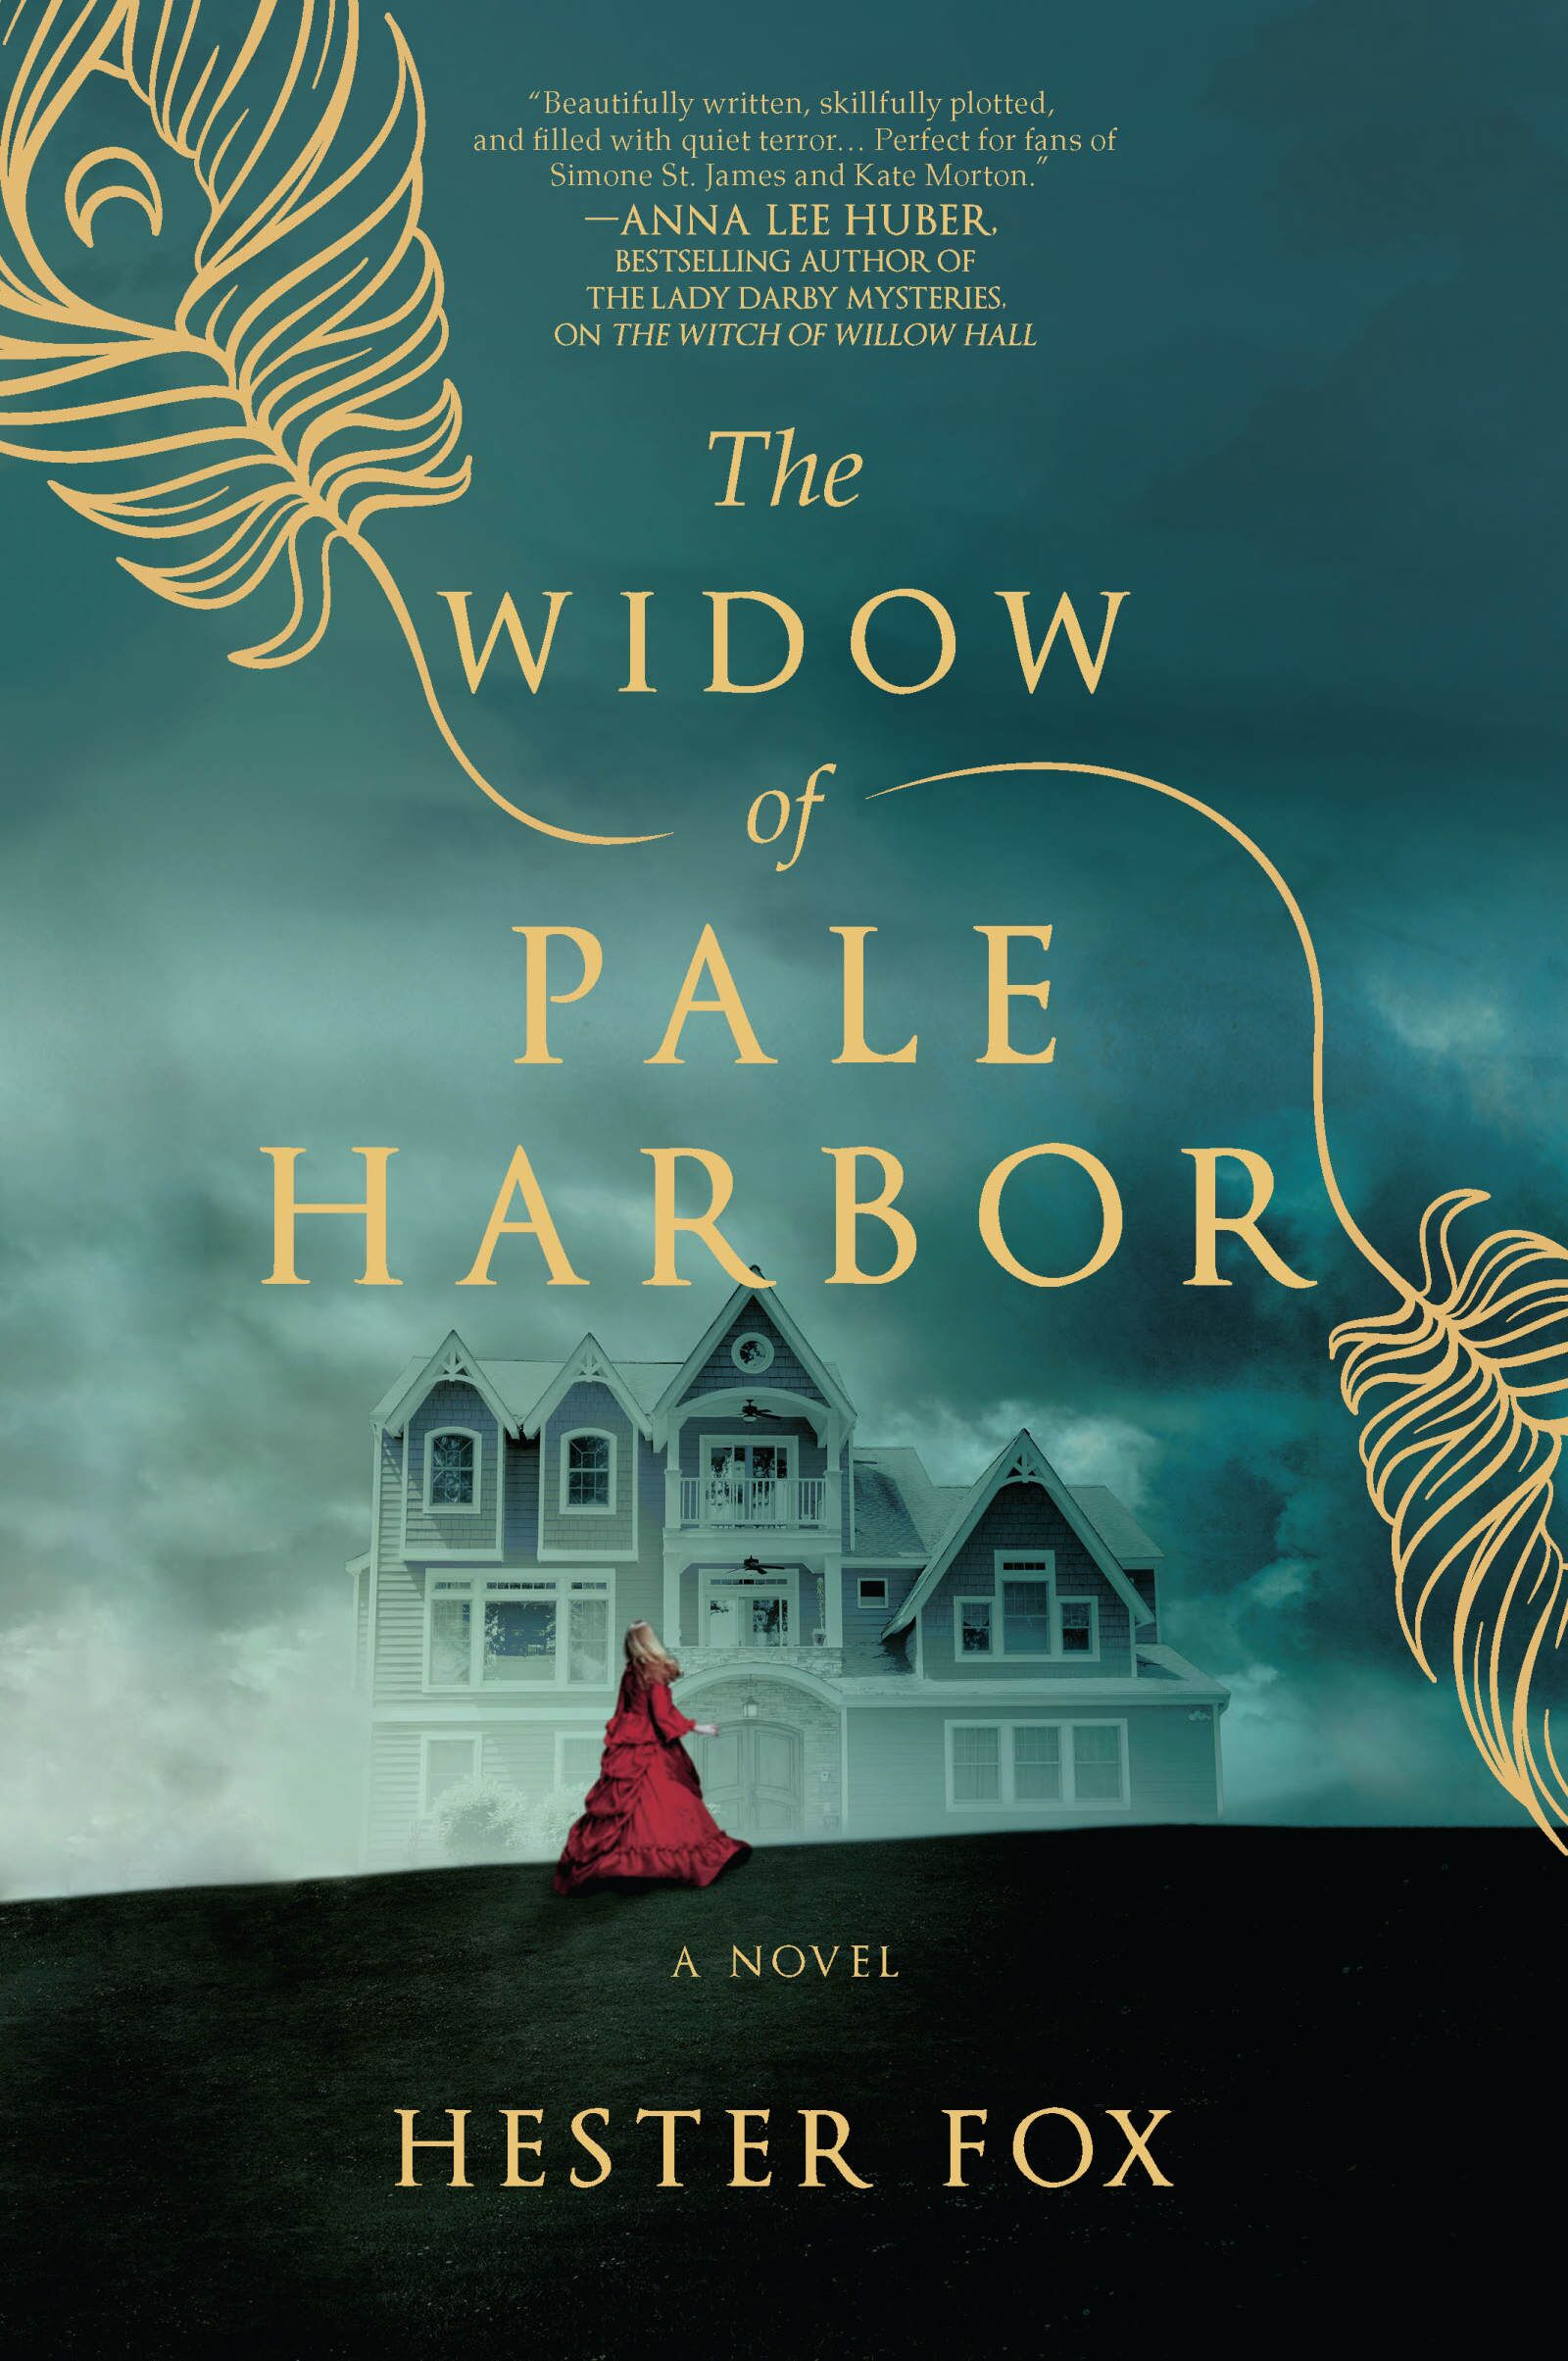 The Widow of Pale Harbor is a spooky Gothic romance for Fall